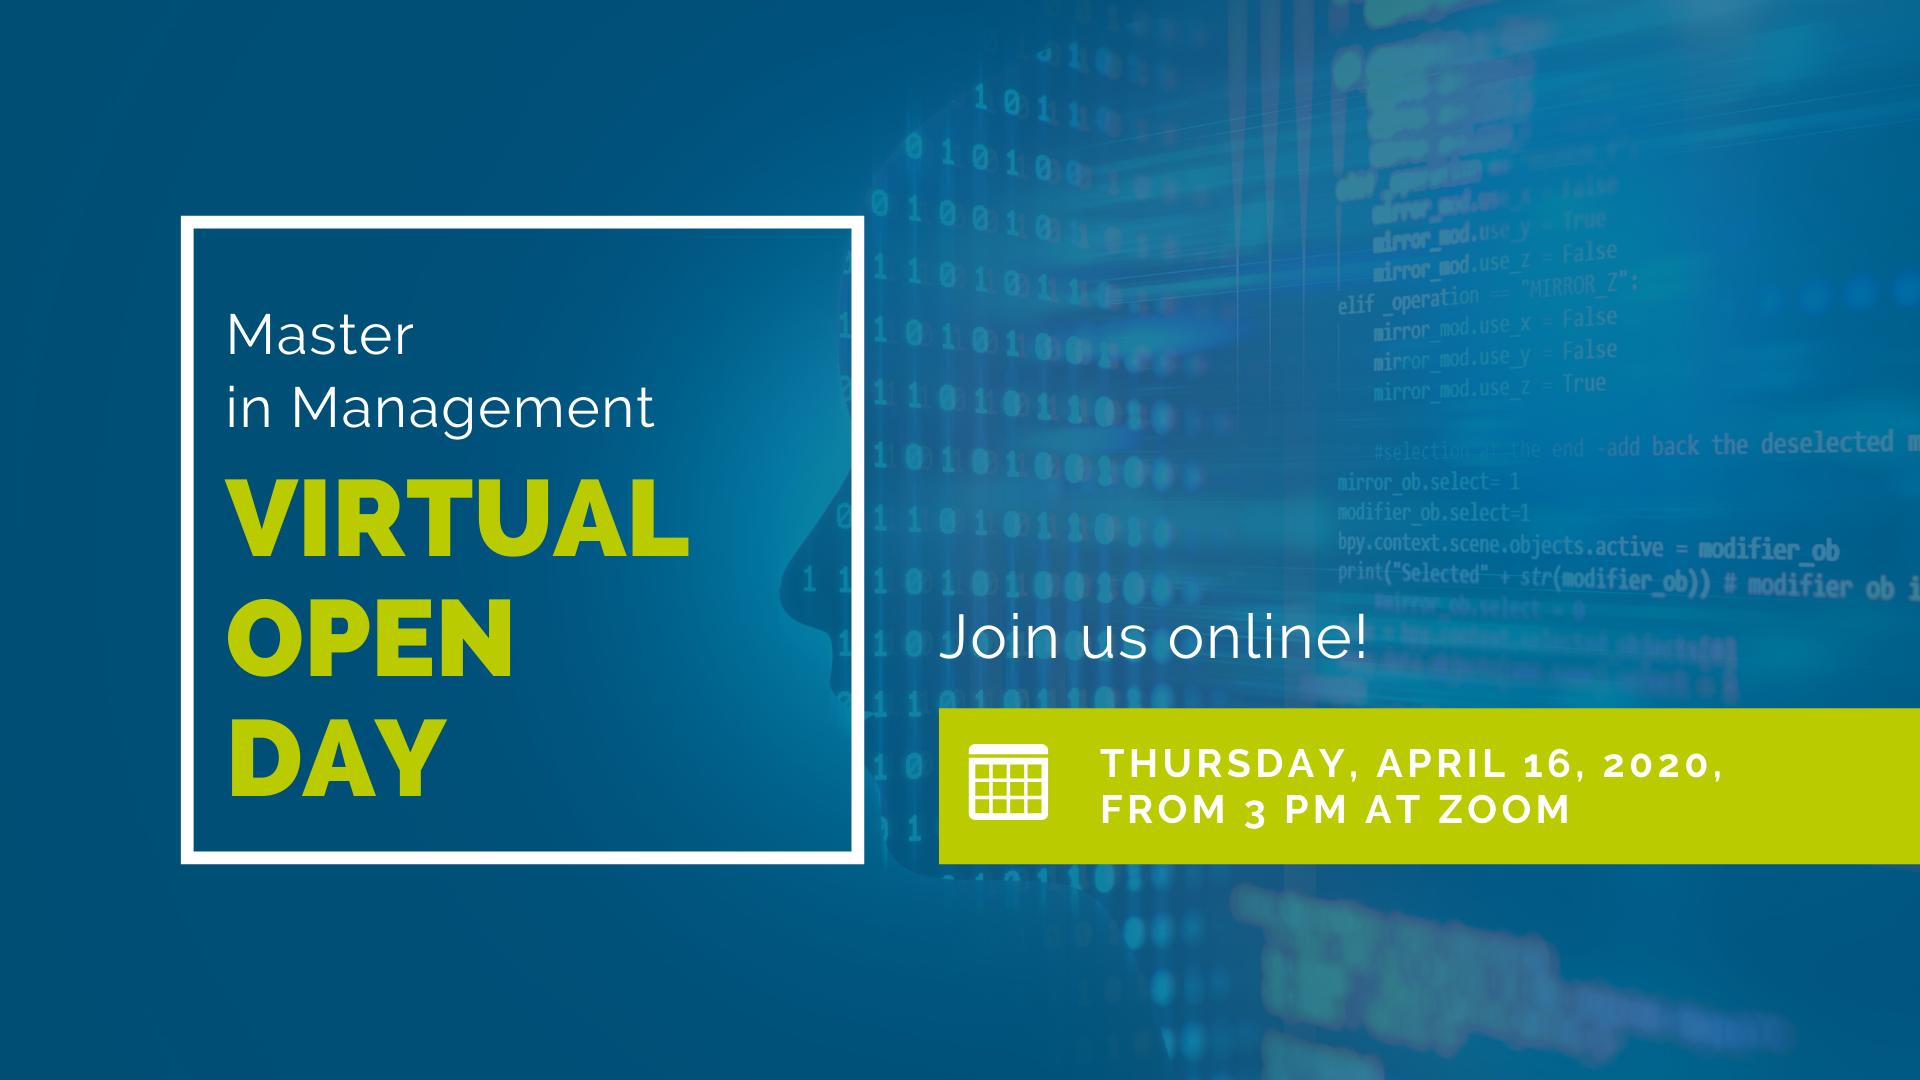 Master in Management Virtual Open Day /Thursday, April 16, 2020/